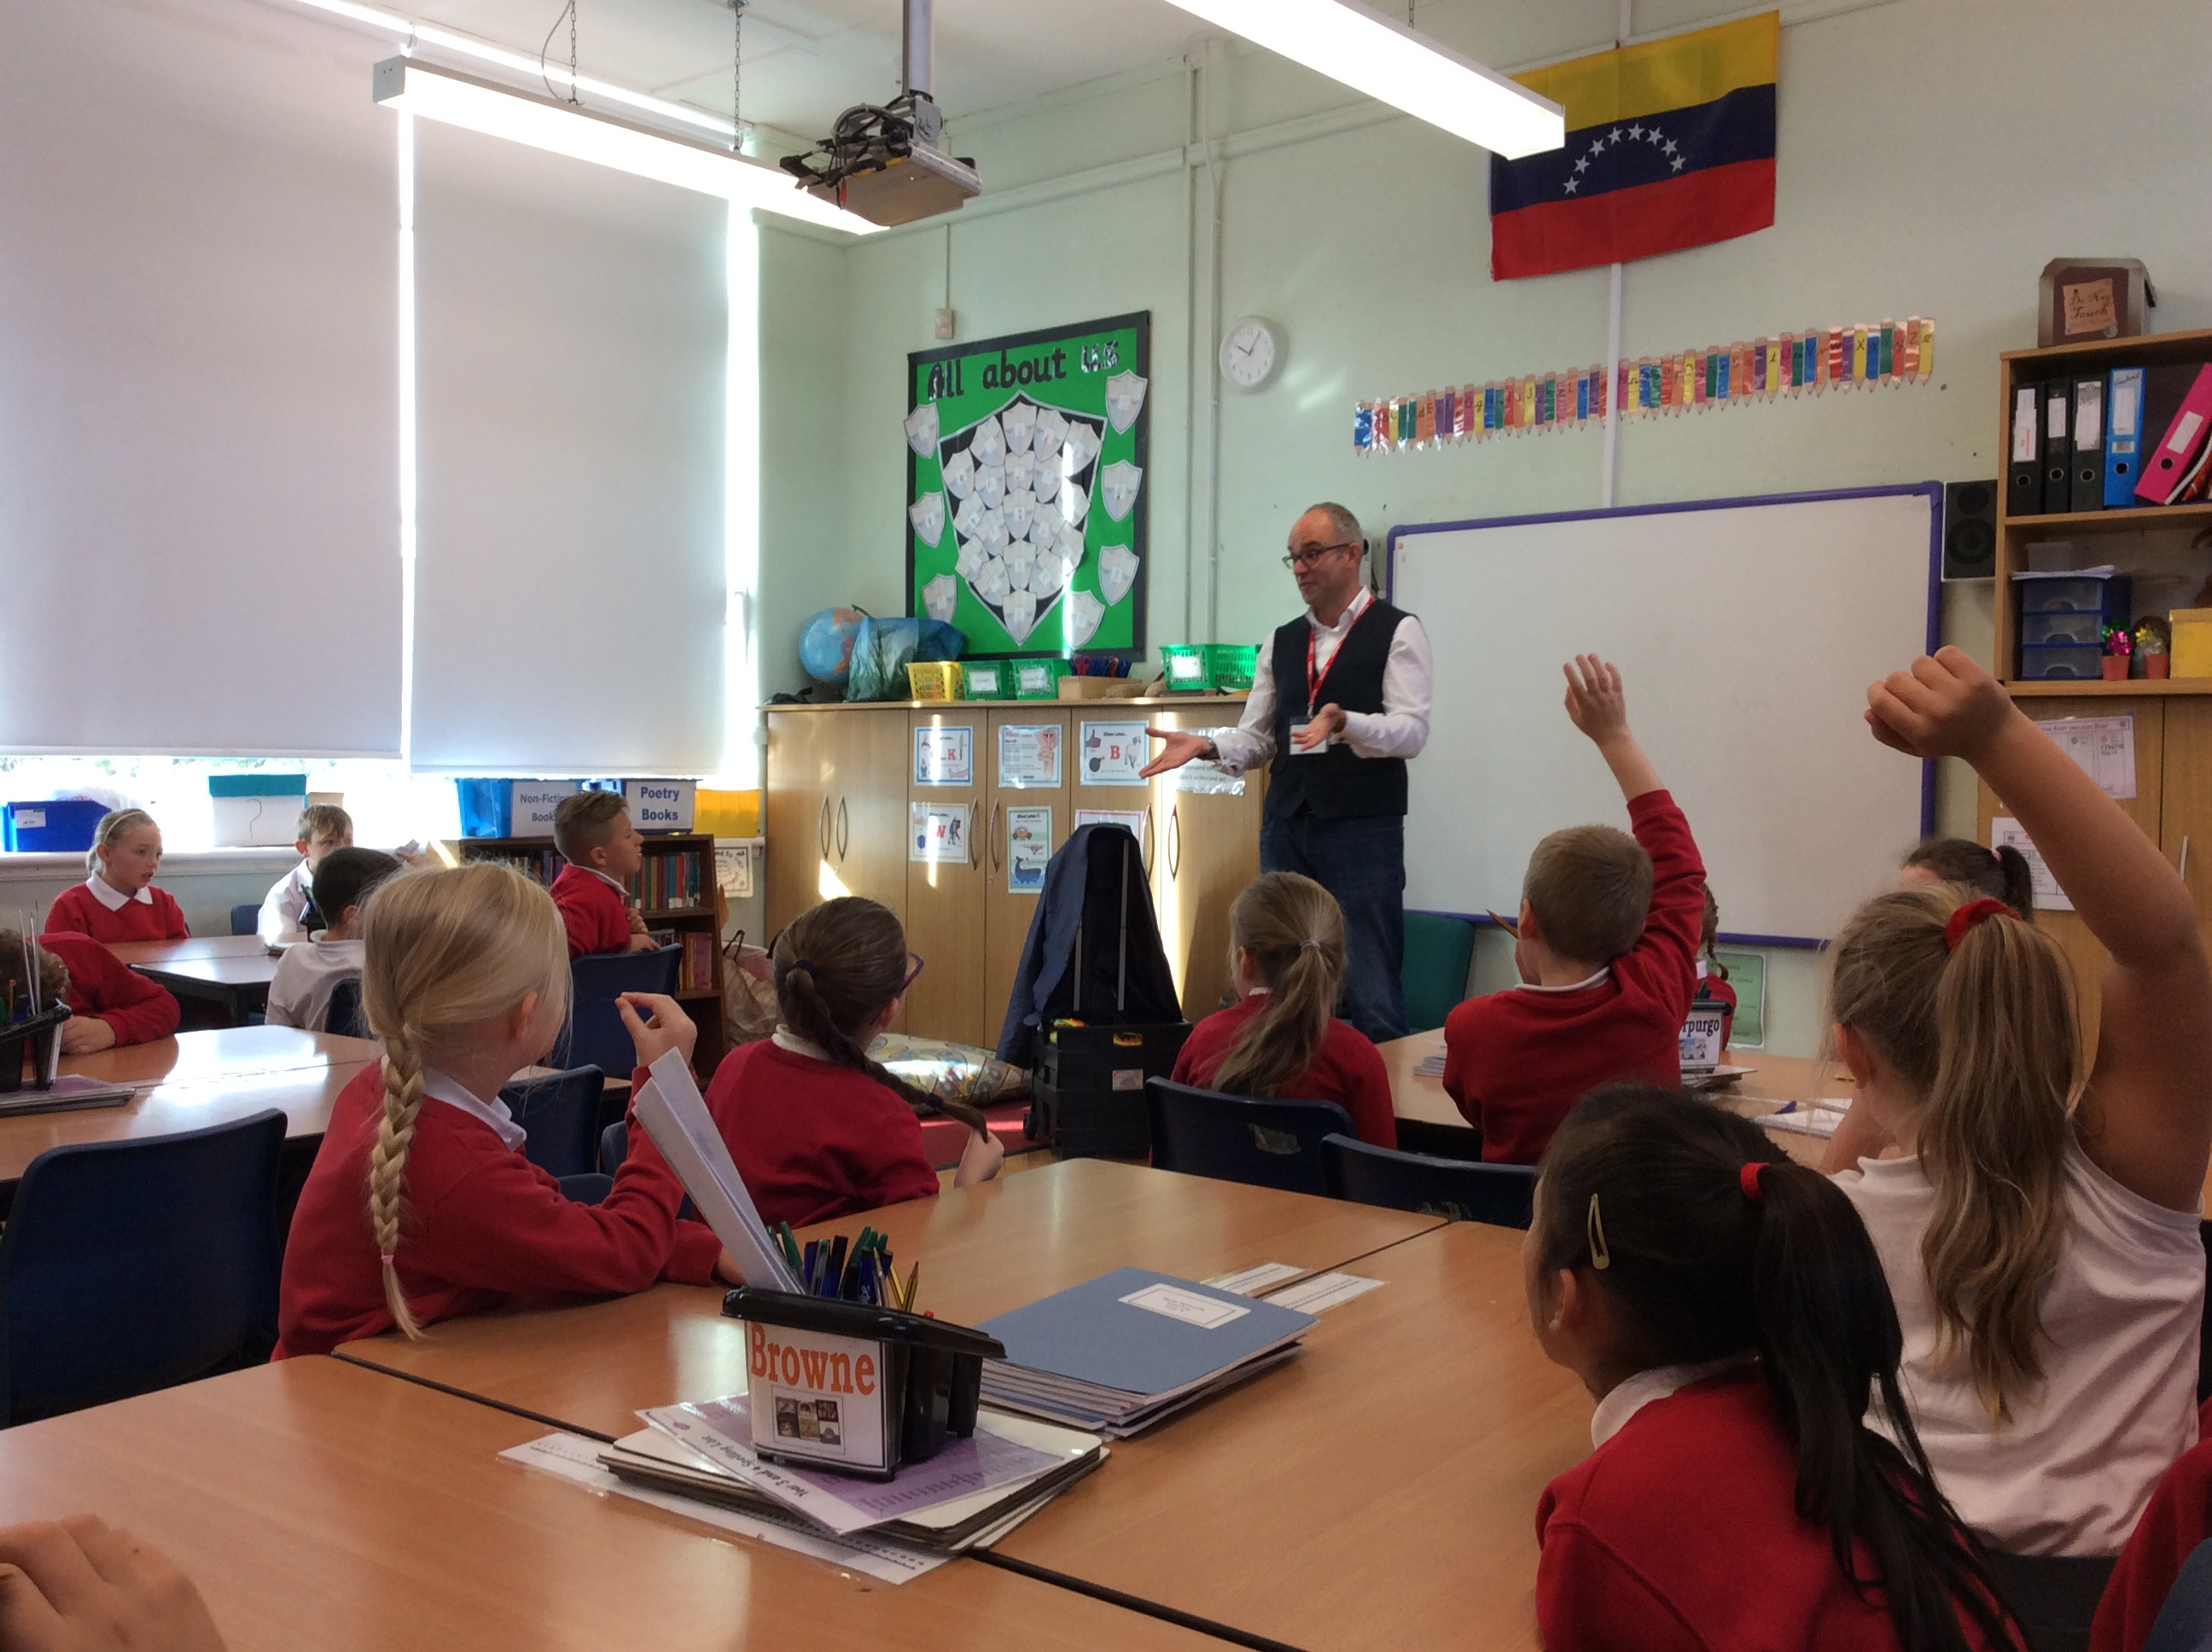 creative writing workshops in primary schools English: search for english literacy workshops for primary schools there are workshops on creative writing, poetry, creative story writing, author visits, story.